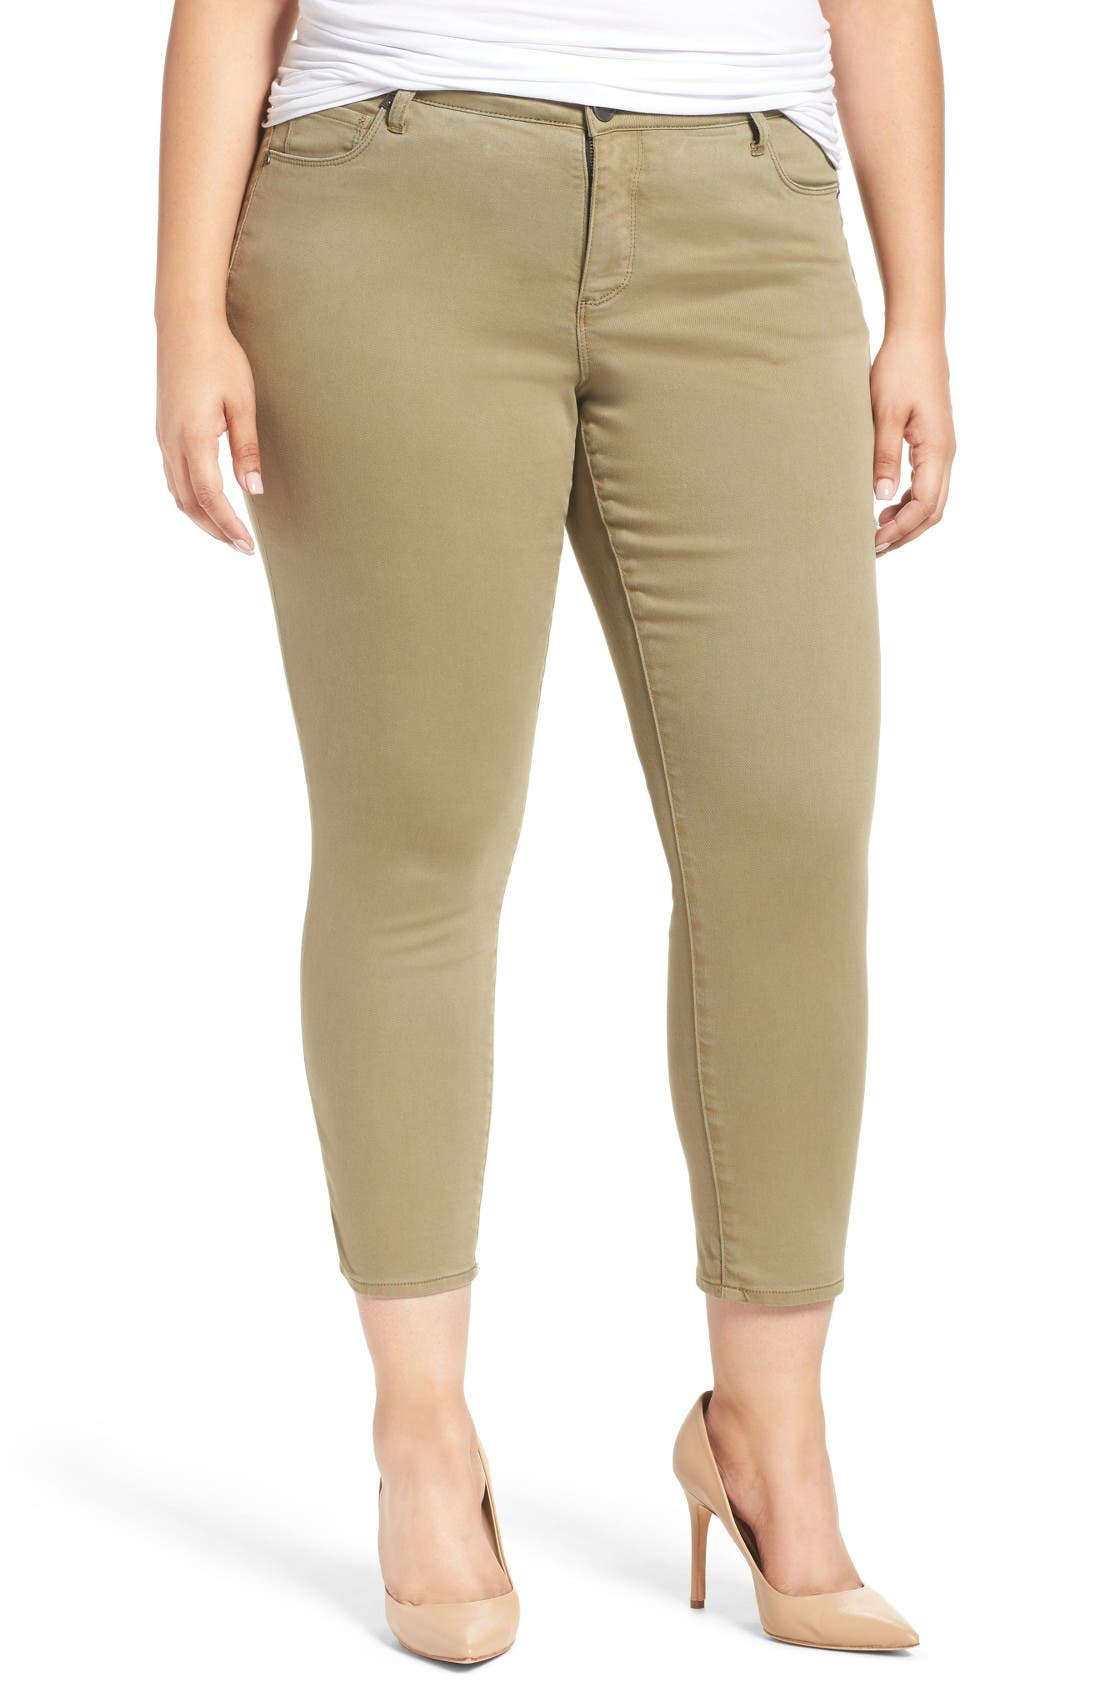 KUT from the Kloth Reese Stretch Ankle Skinny Pants (Plus Size)